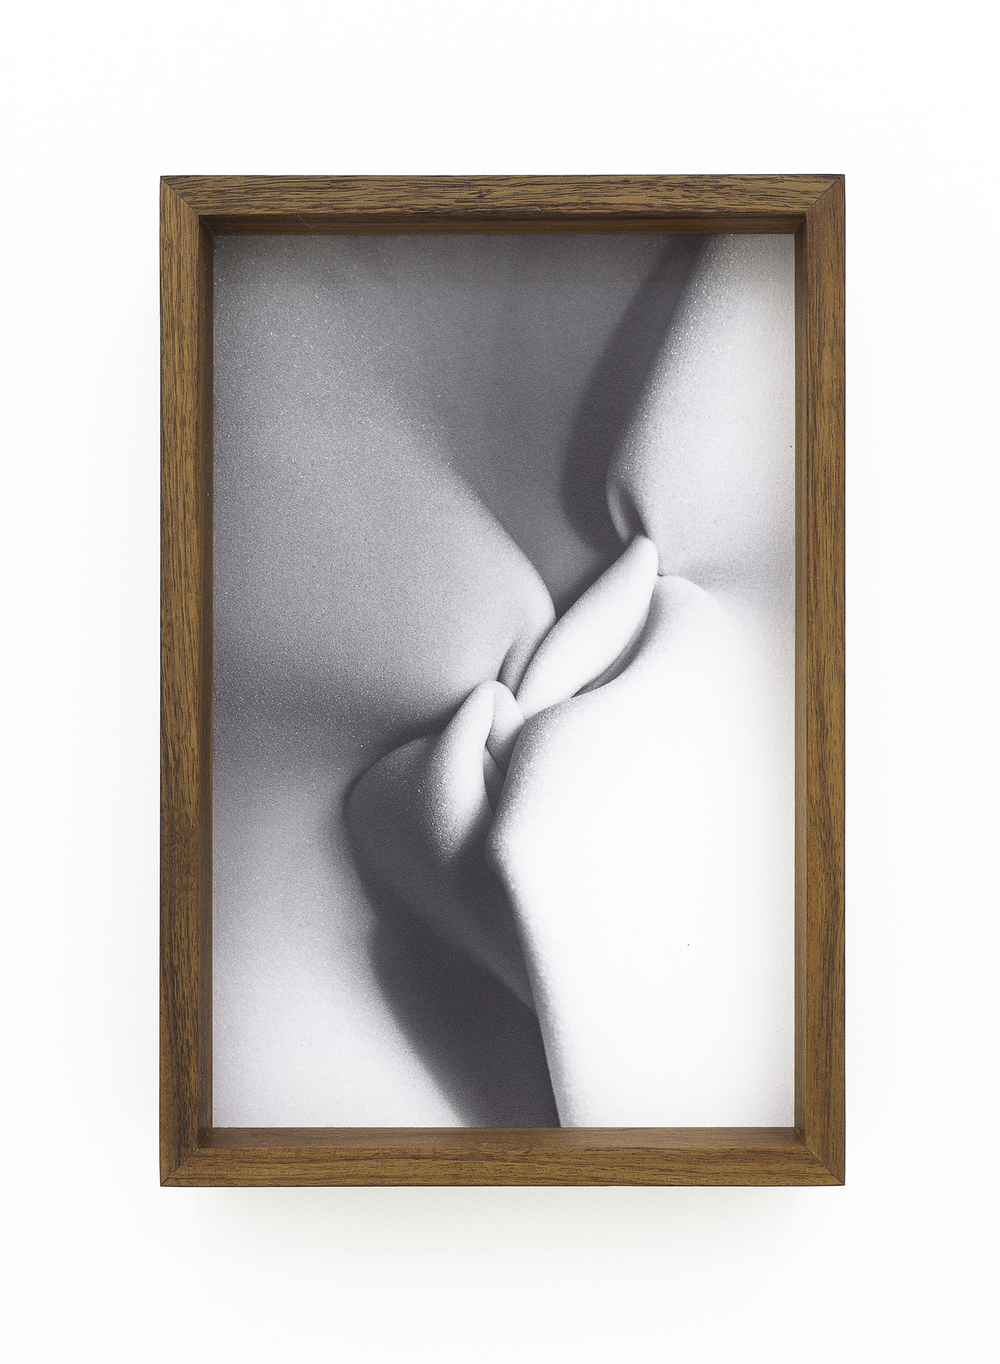 Marea de Espuma, 2015, print in fine art cotton paper, 30 x 20cm